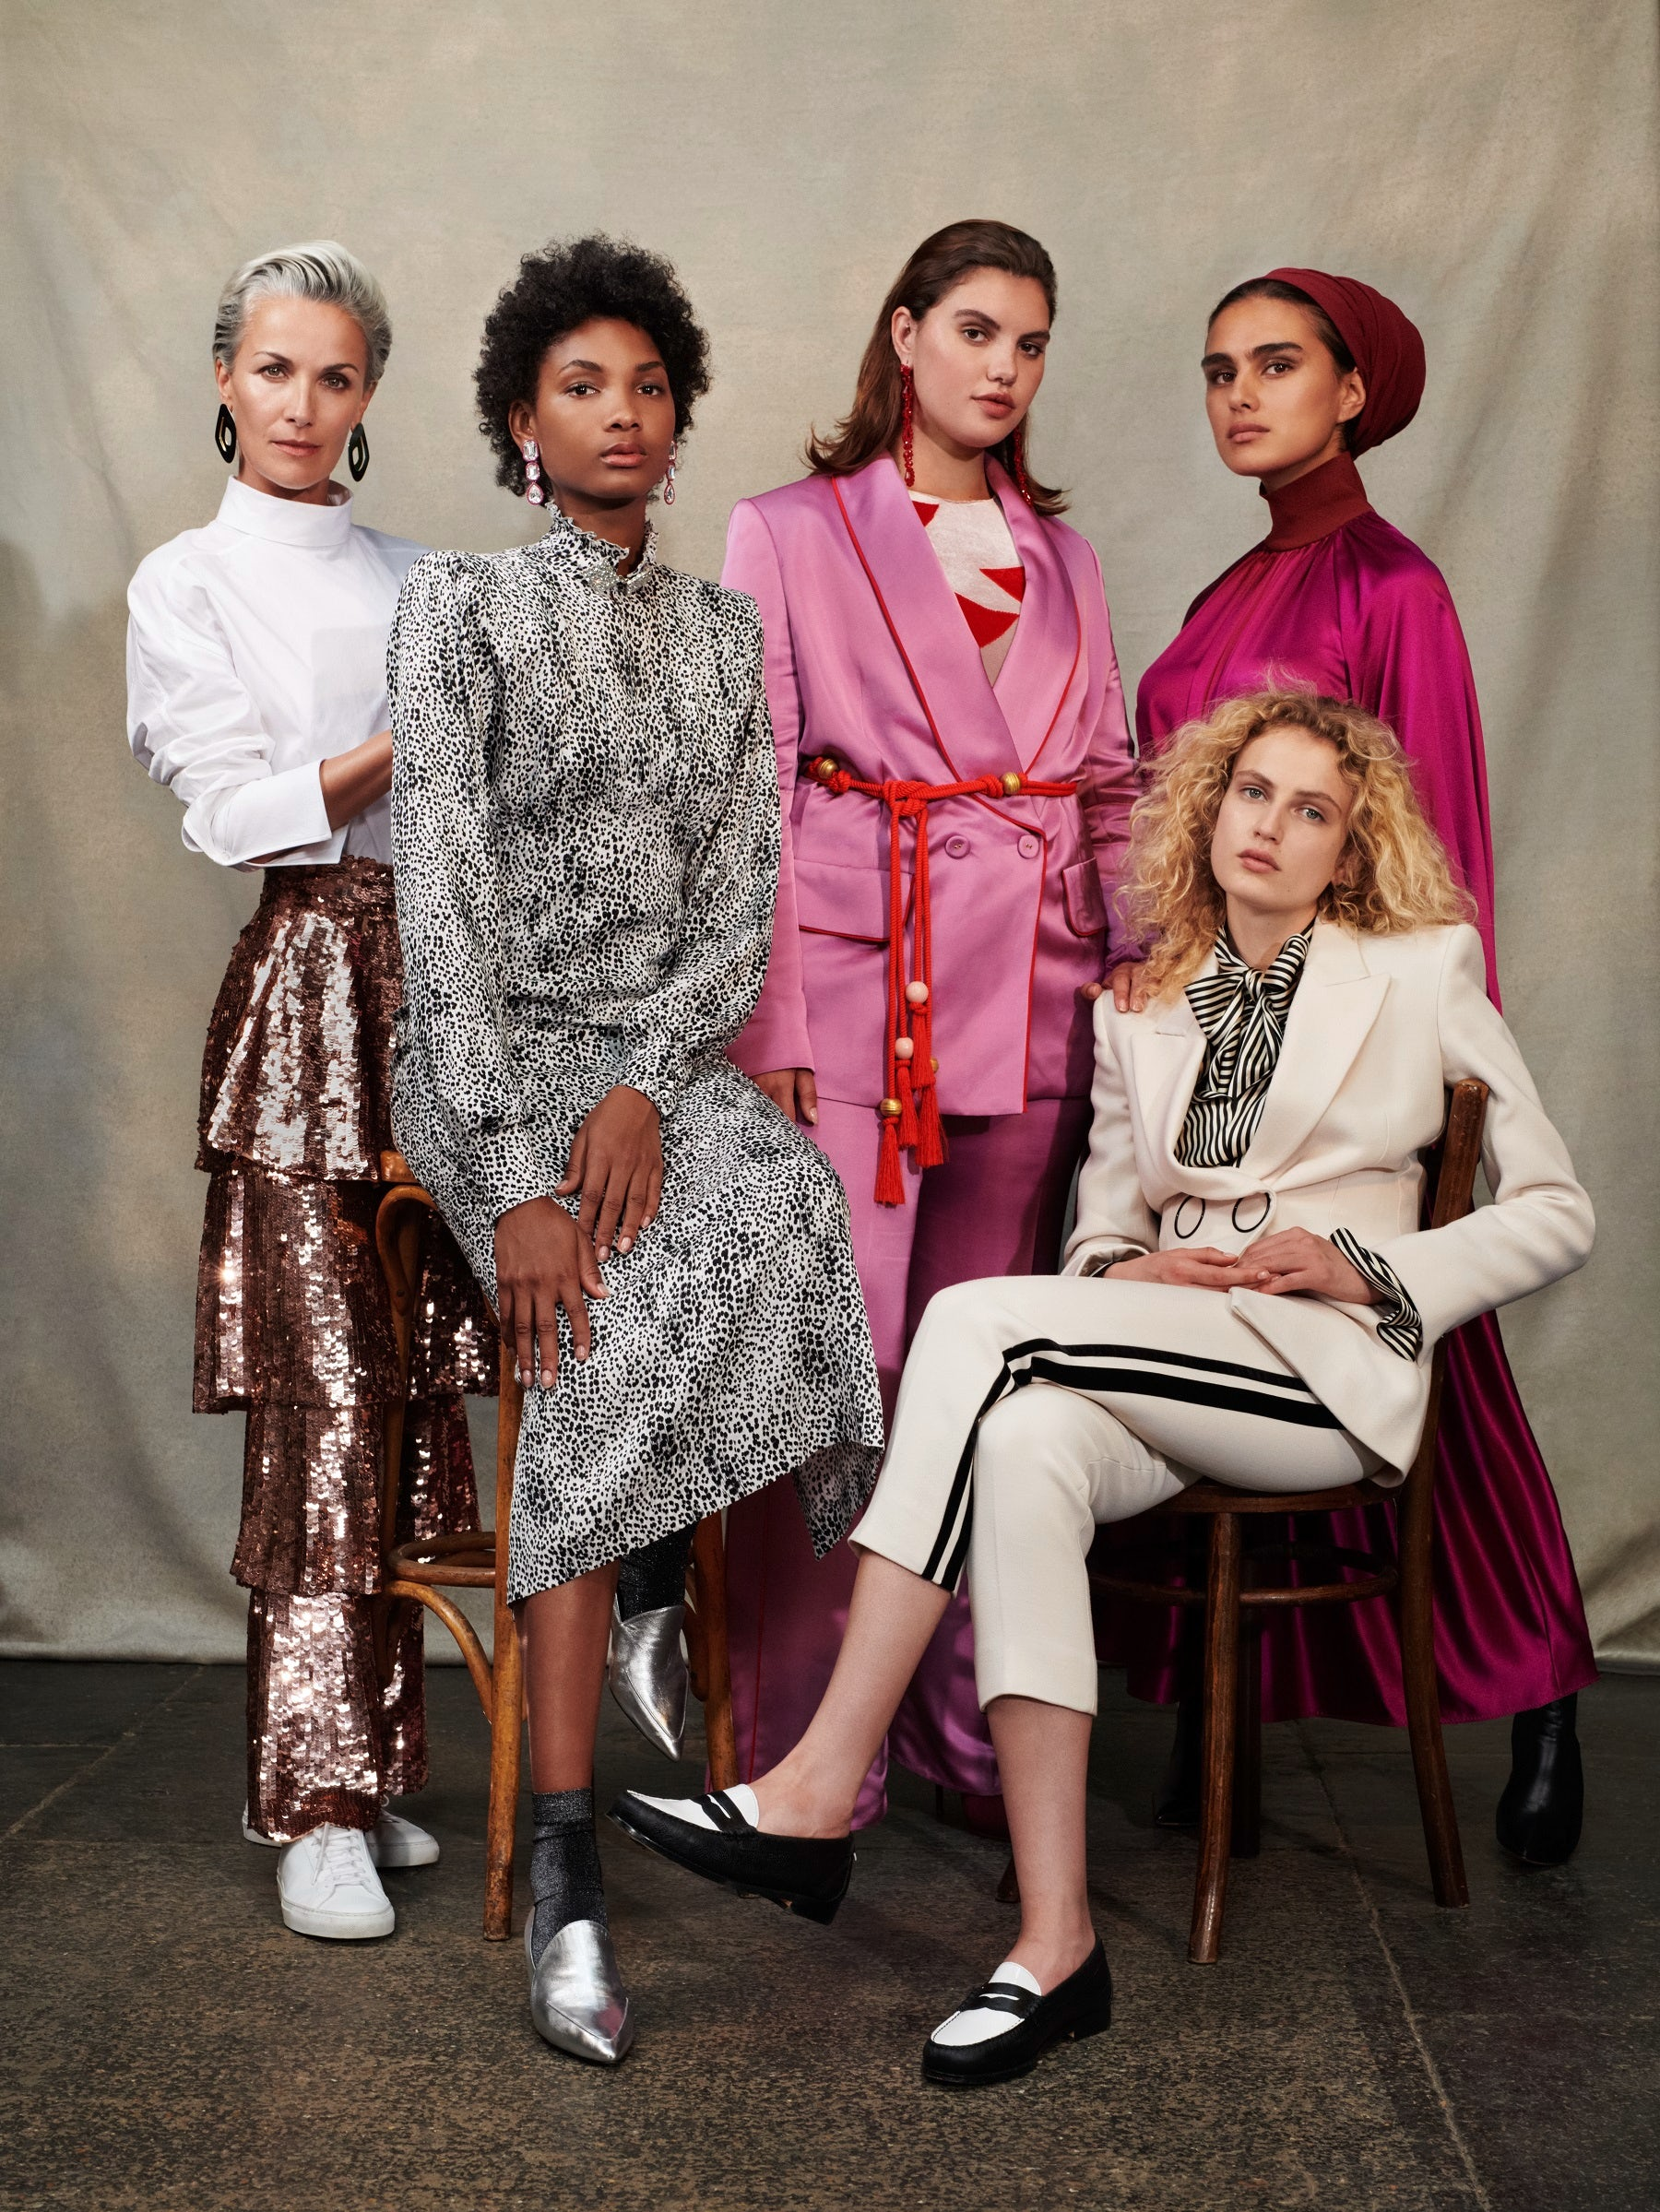 Article cover of Ahead of IPO, Farfetch Pushes Into Modest Dressing